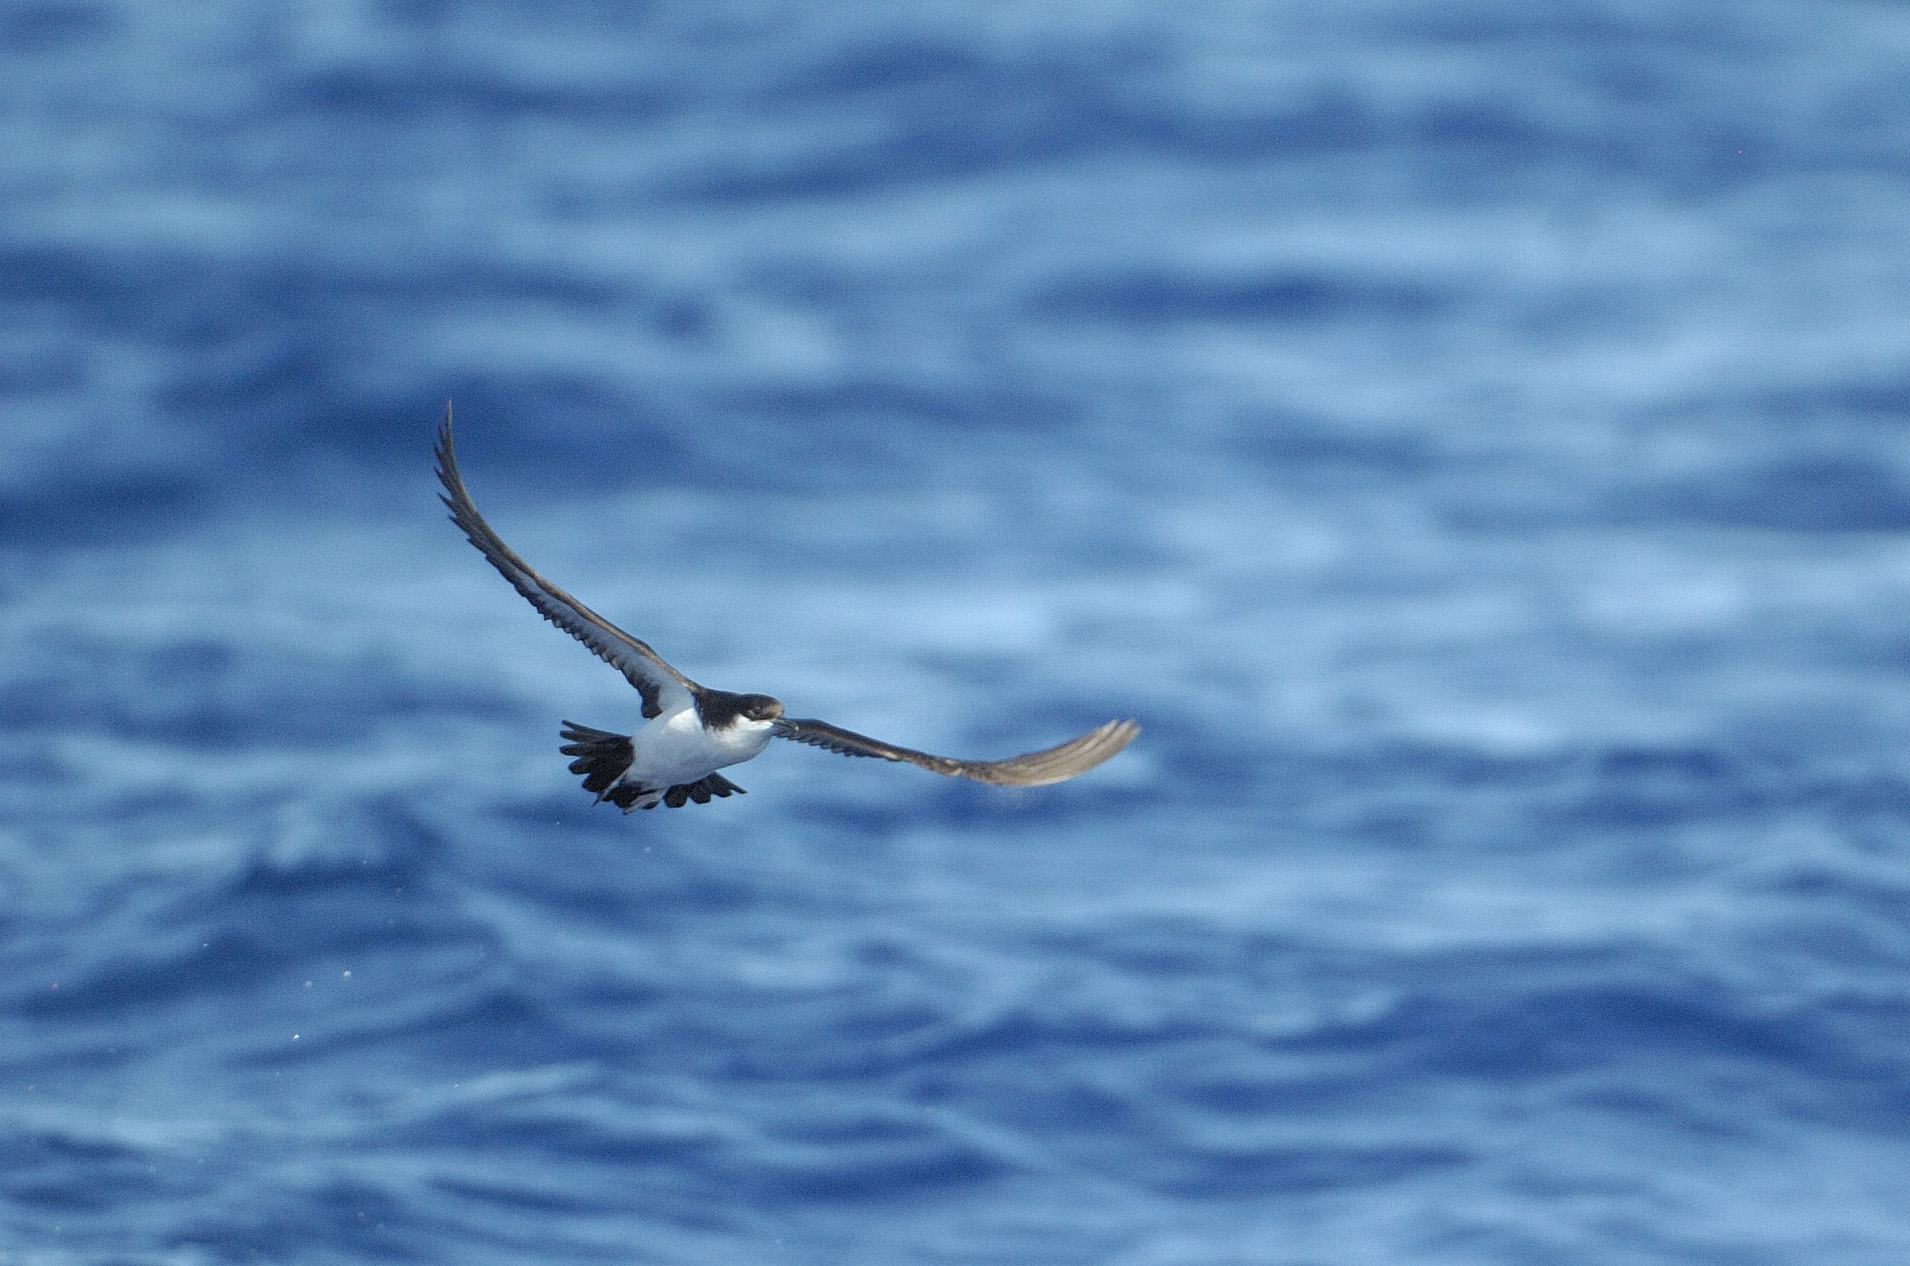 A Newell's shearwater in flight. Image credit: Photo by Jim Denny / Kaua`i Birding Tours, LLC